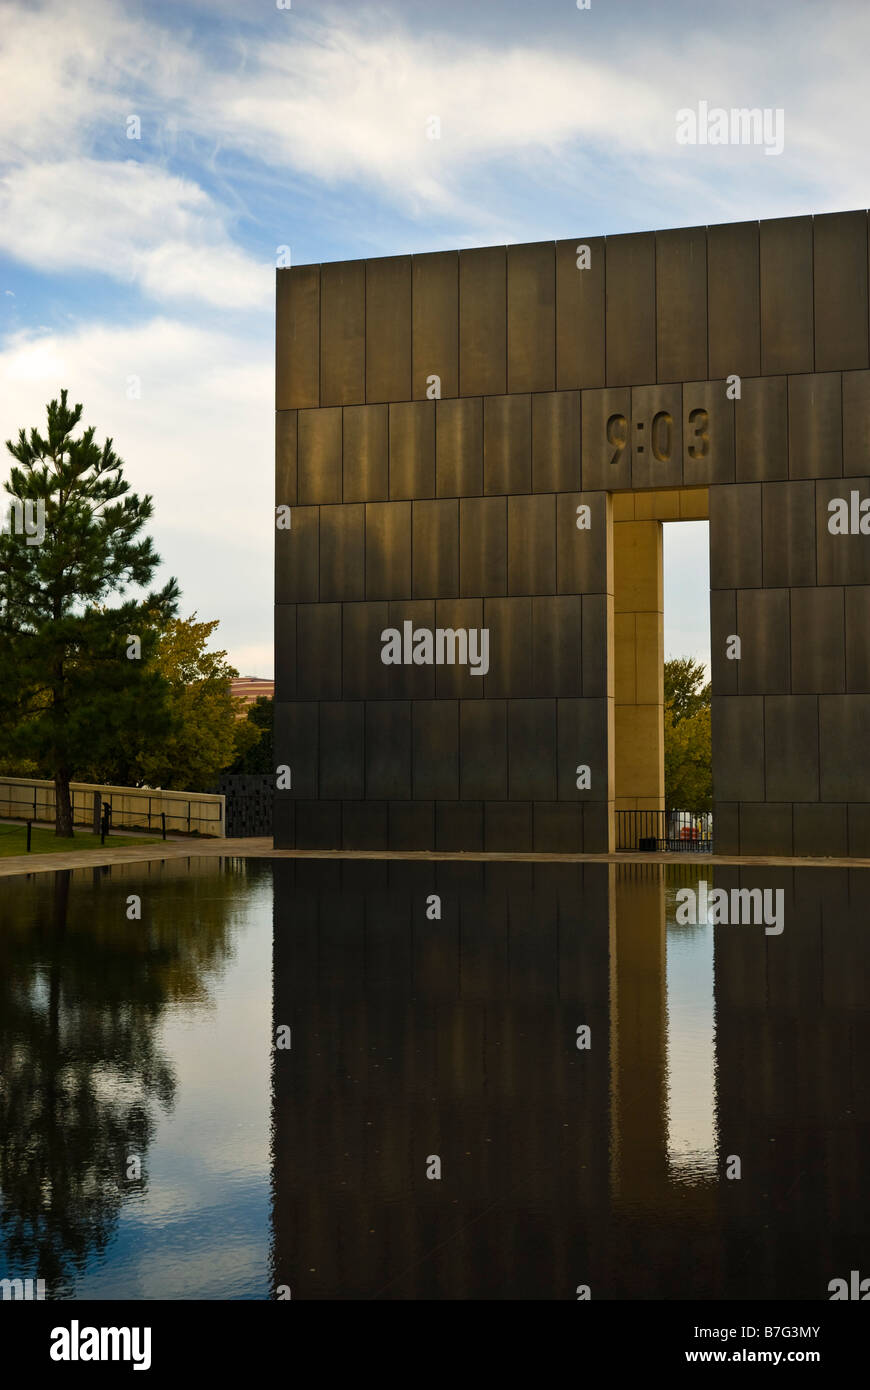 Oklahoma City National Memorial and Museum in Oklahoma City, Oklahoma, USA. Stock Photo